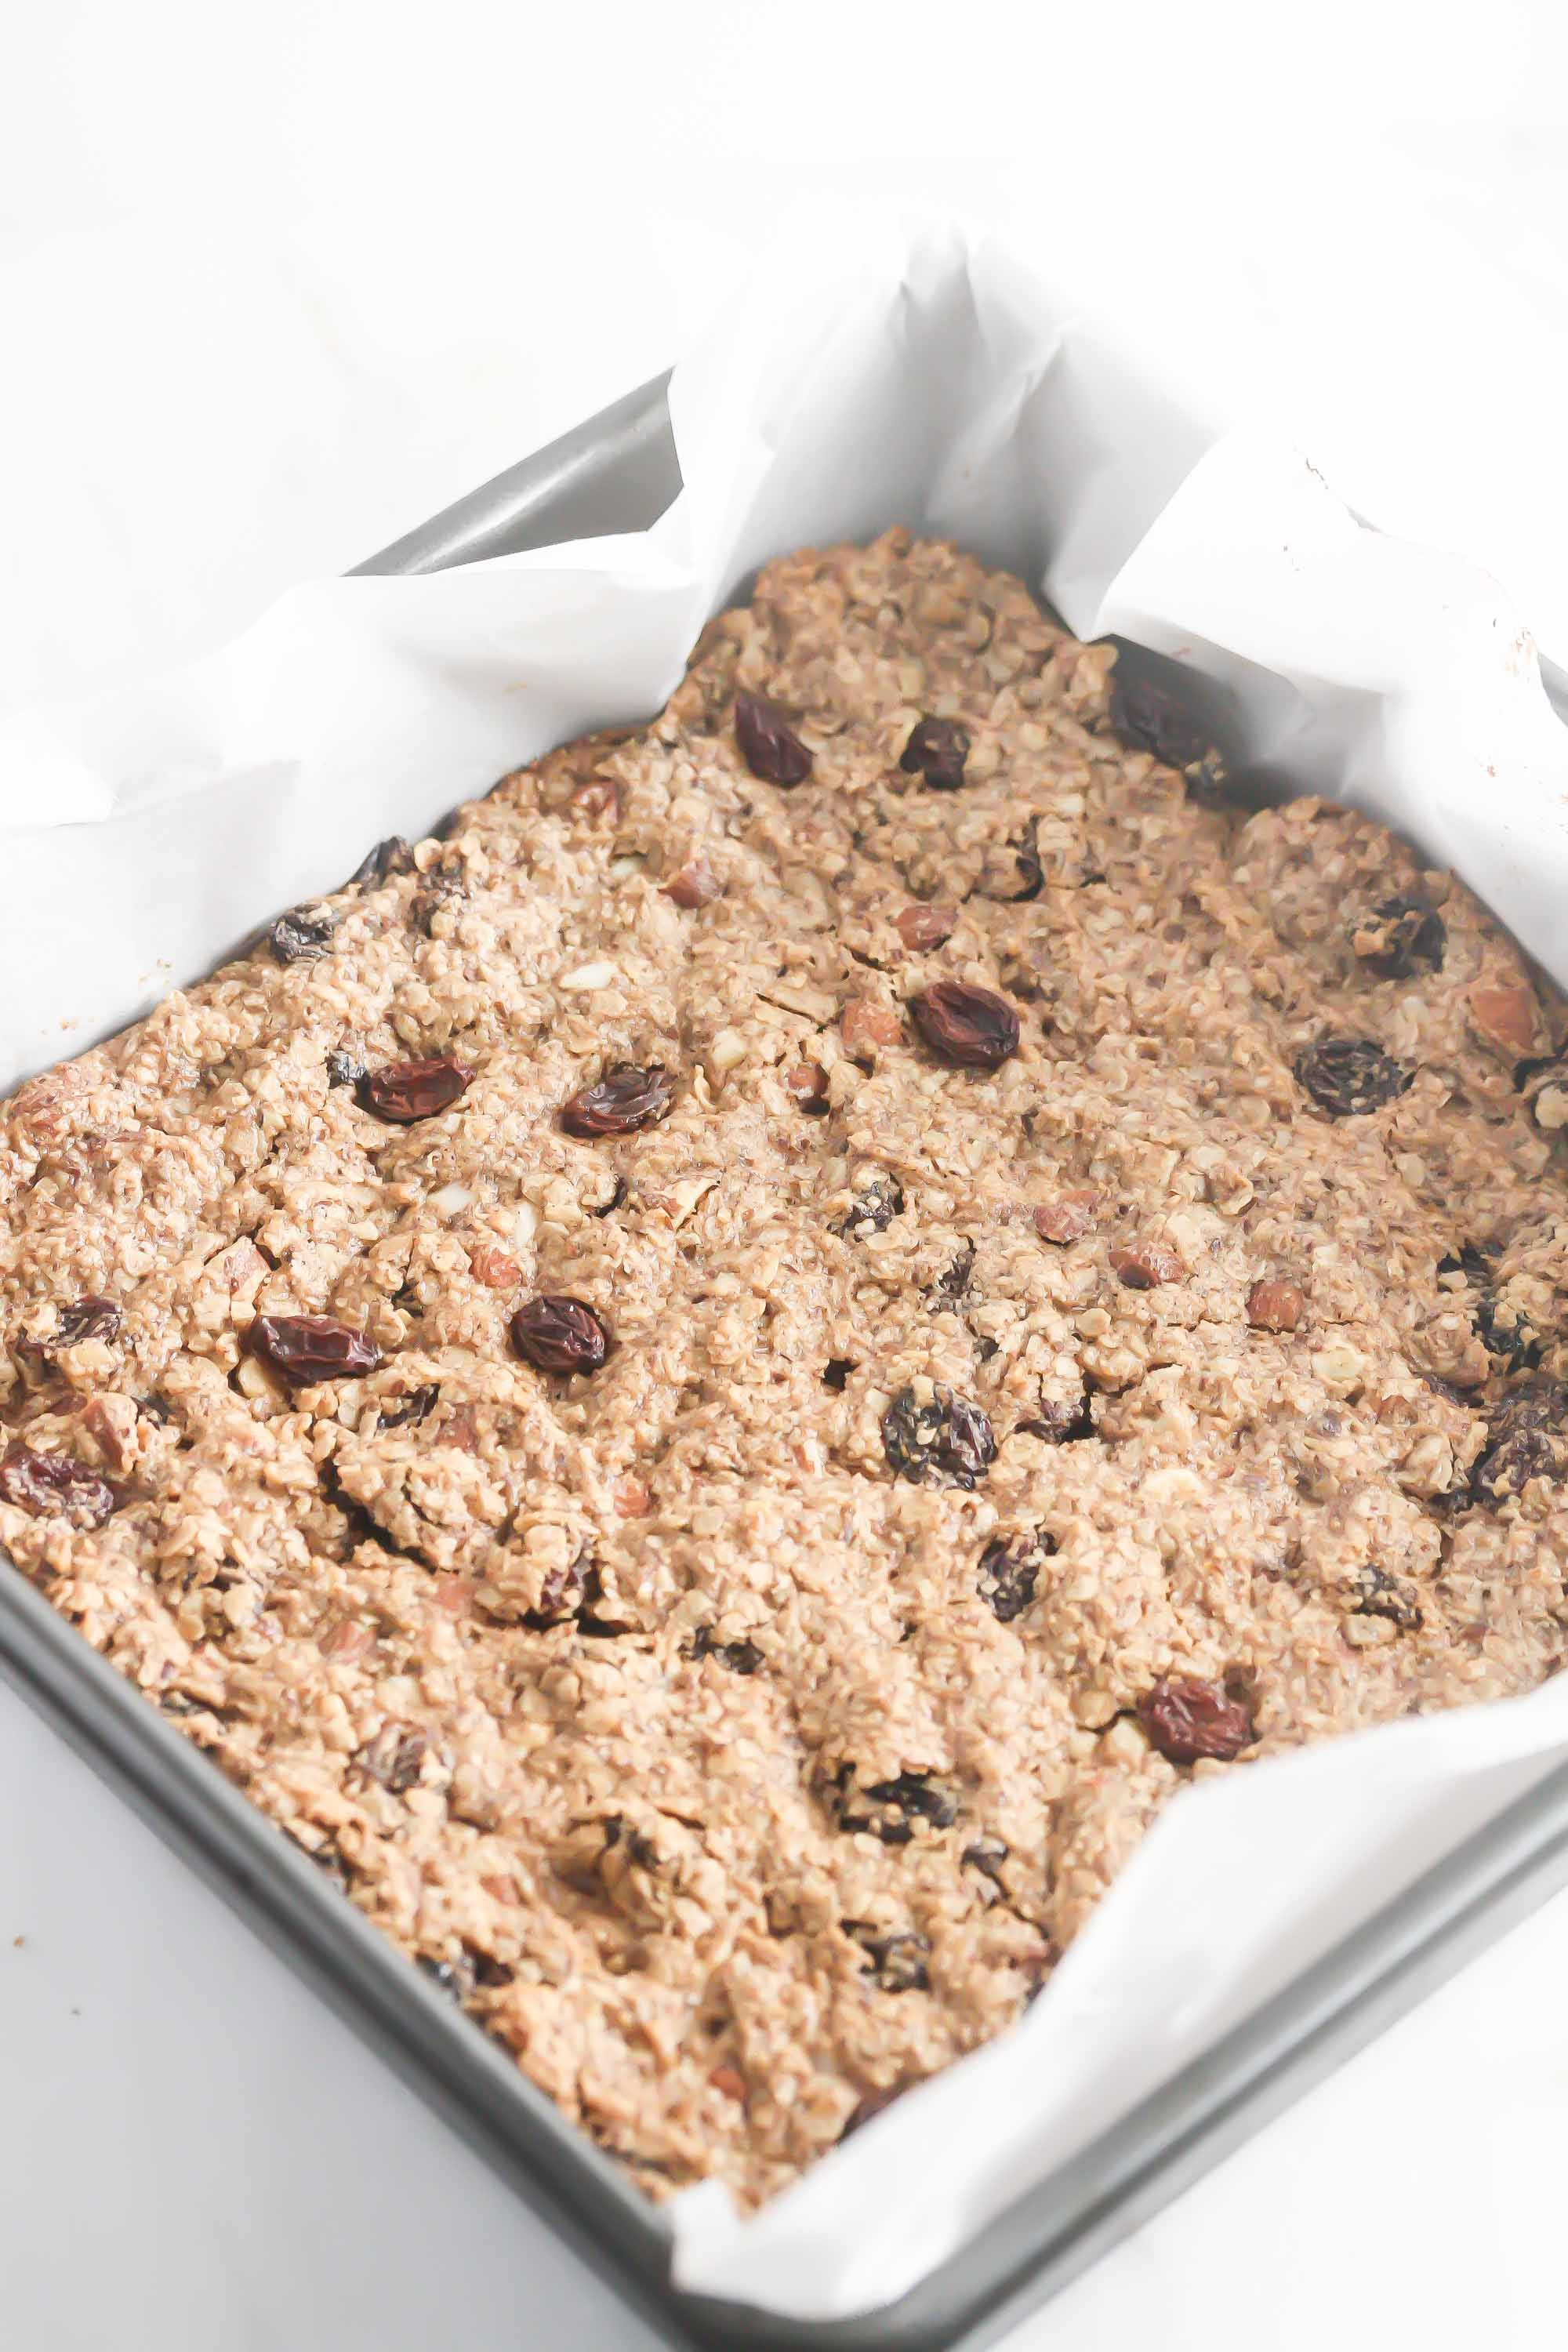 http://www.sunmaid.com/fitness/guest-food-bloggers/almond-oatmeal-raisins-bars/